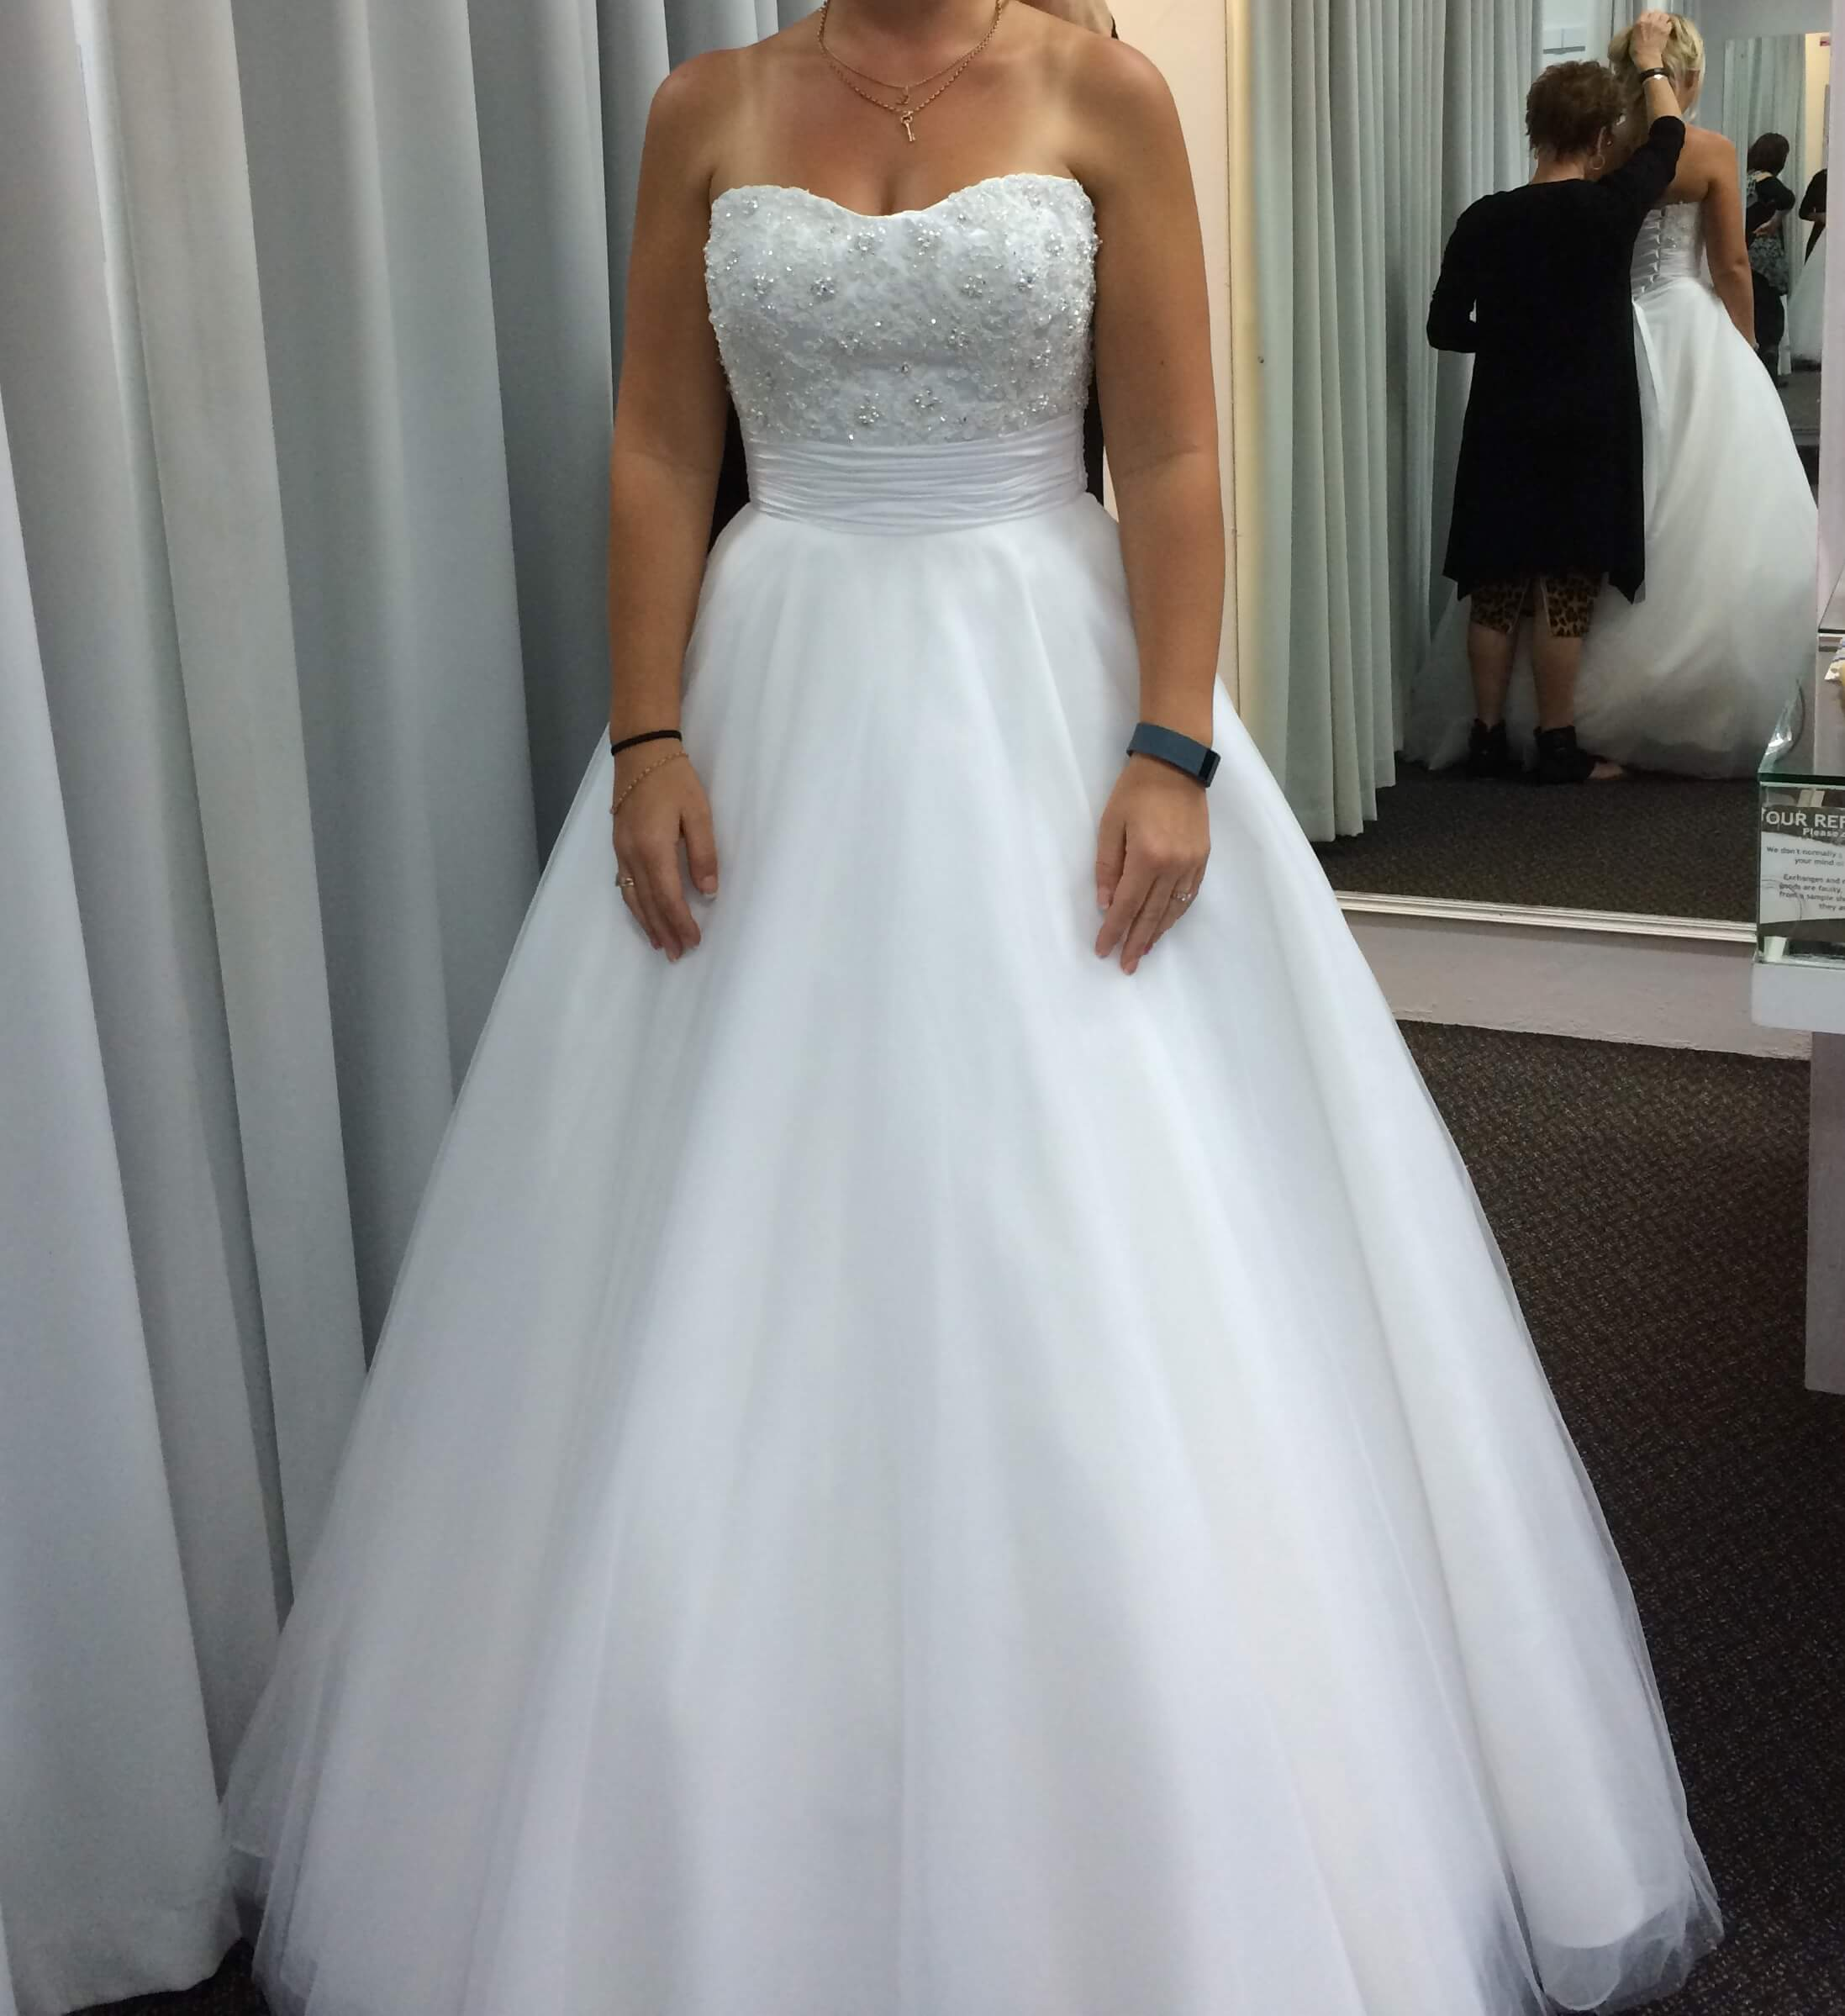 Simple 2nd Wedding Ideas: Angeline - Size 8 A-Line Dress